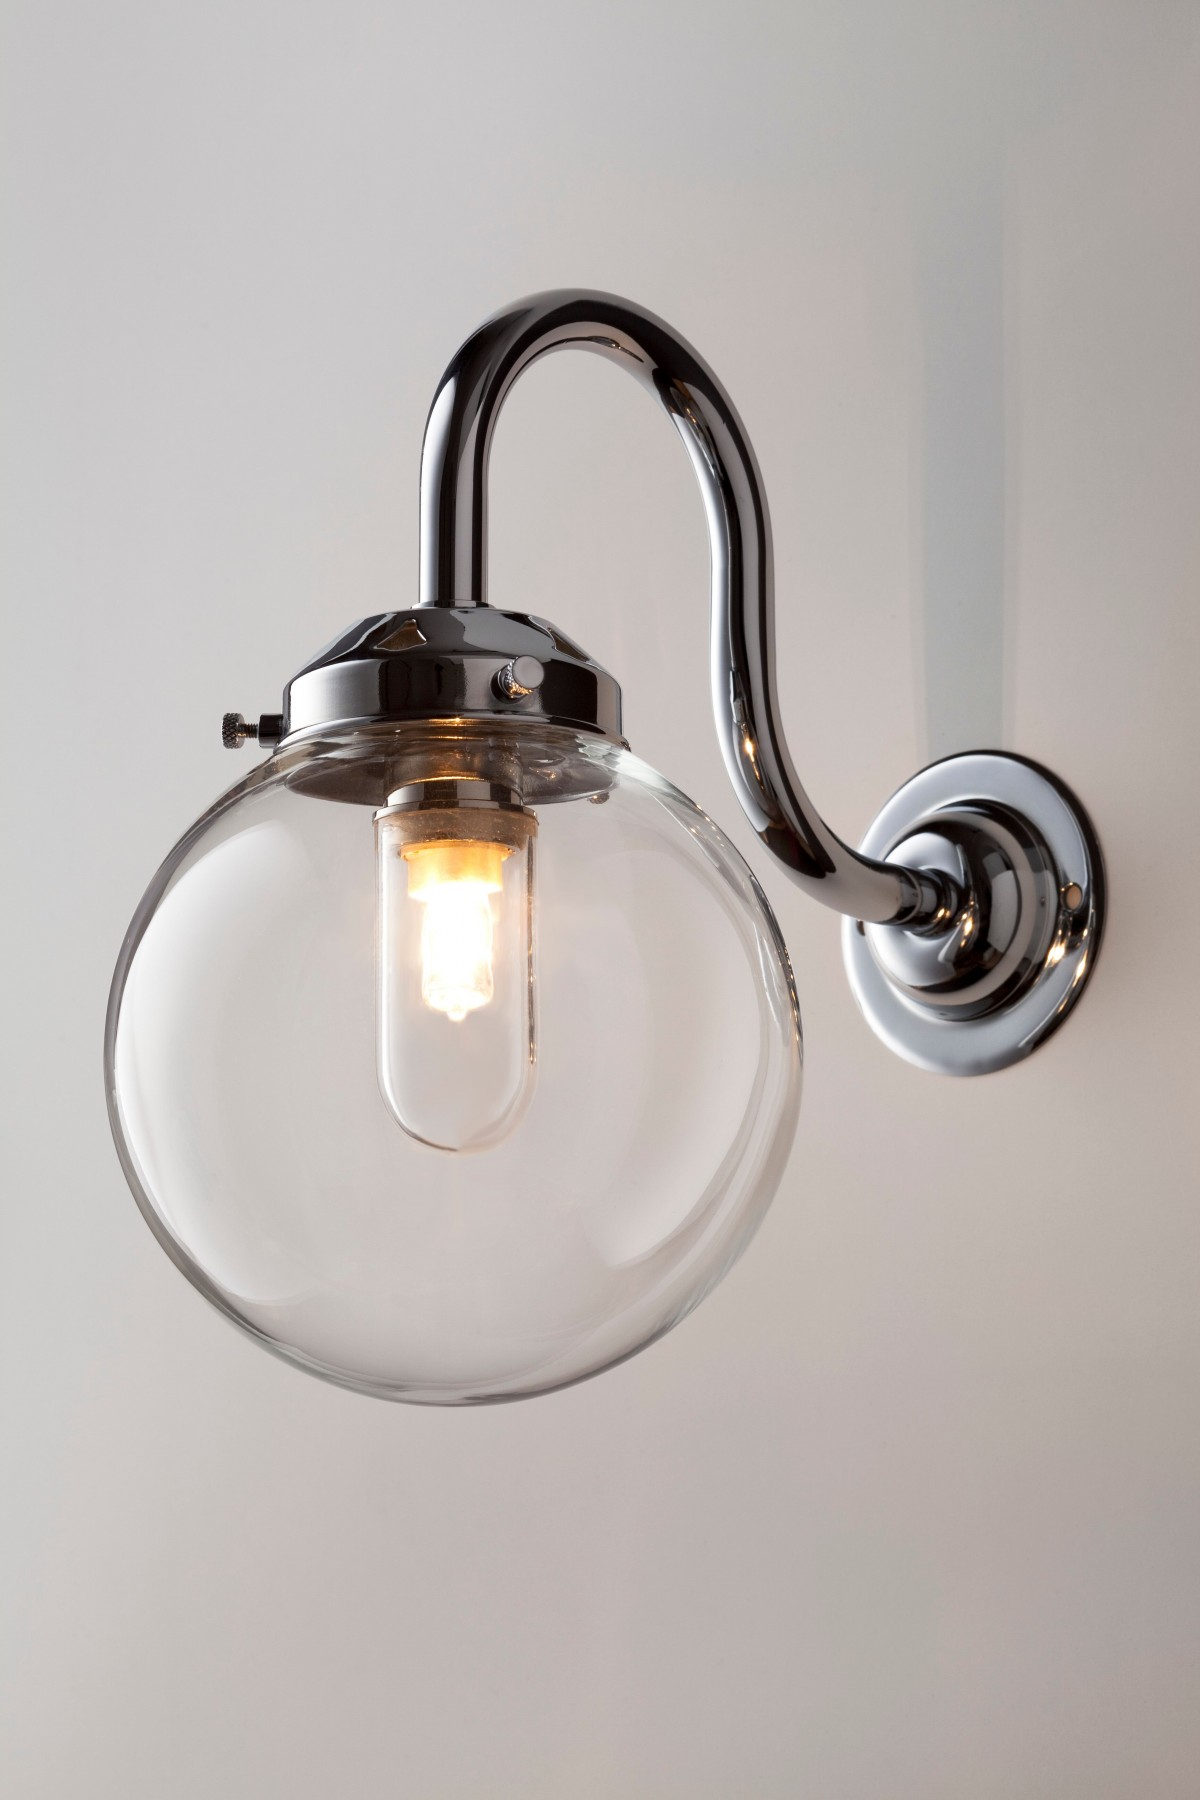 Swan Arm Glass Wall Light Old School Electric